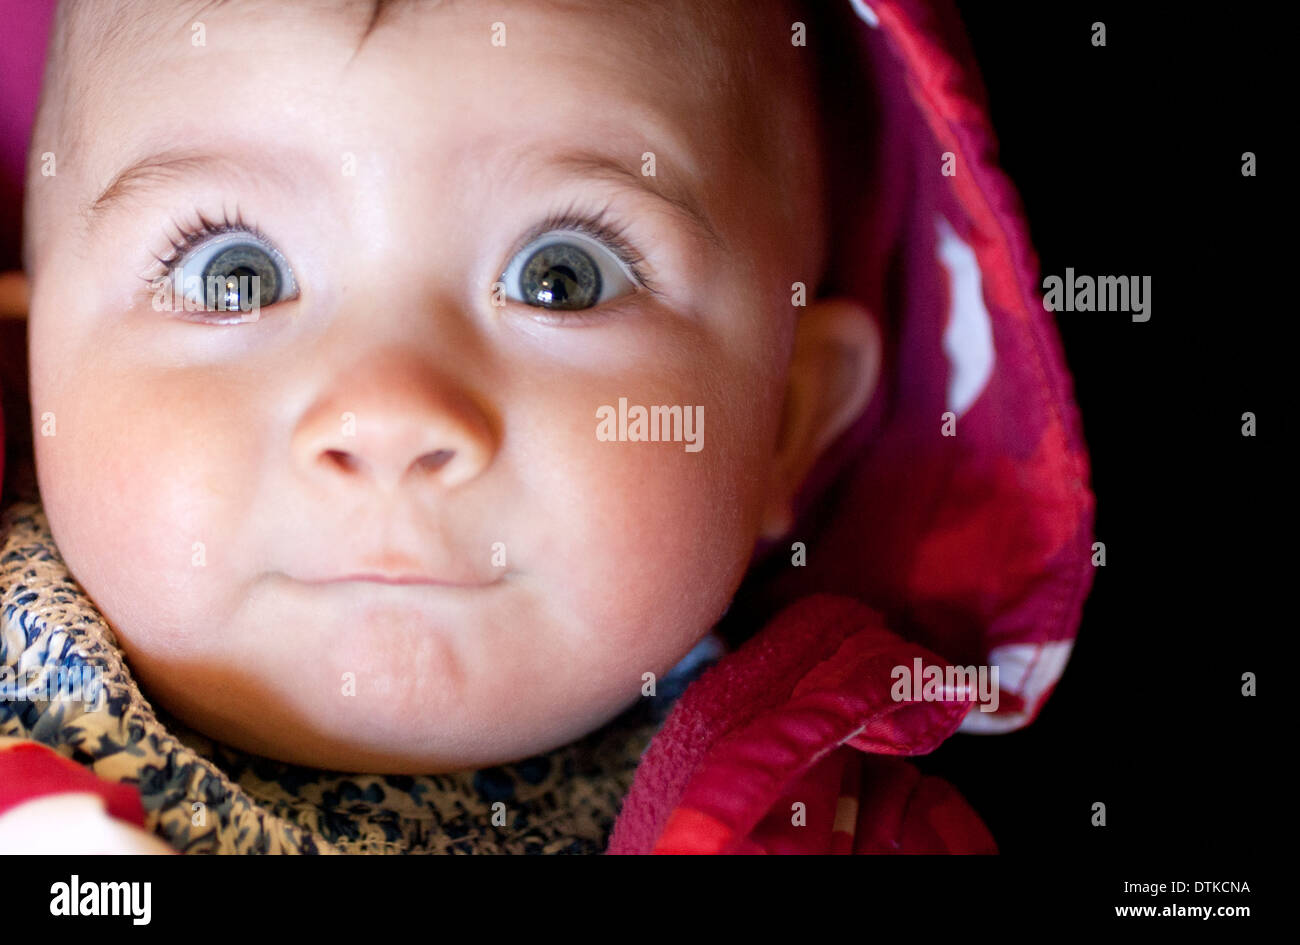 Close up of baby girl's surprised face - Stock Image